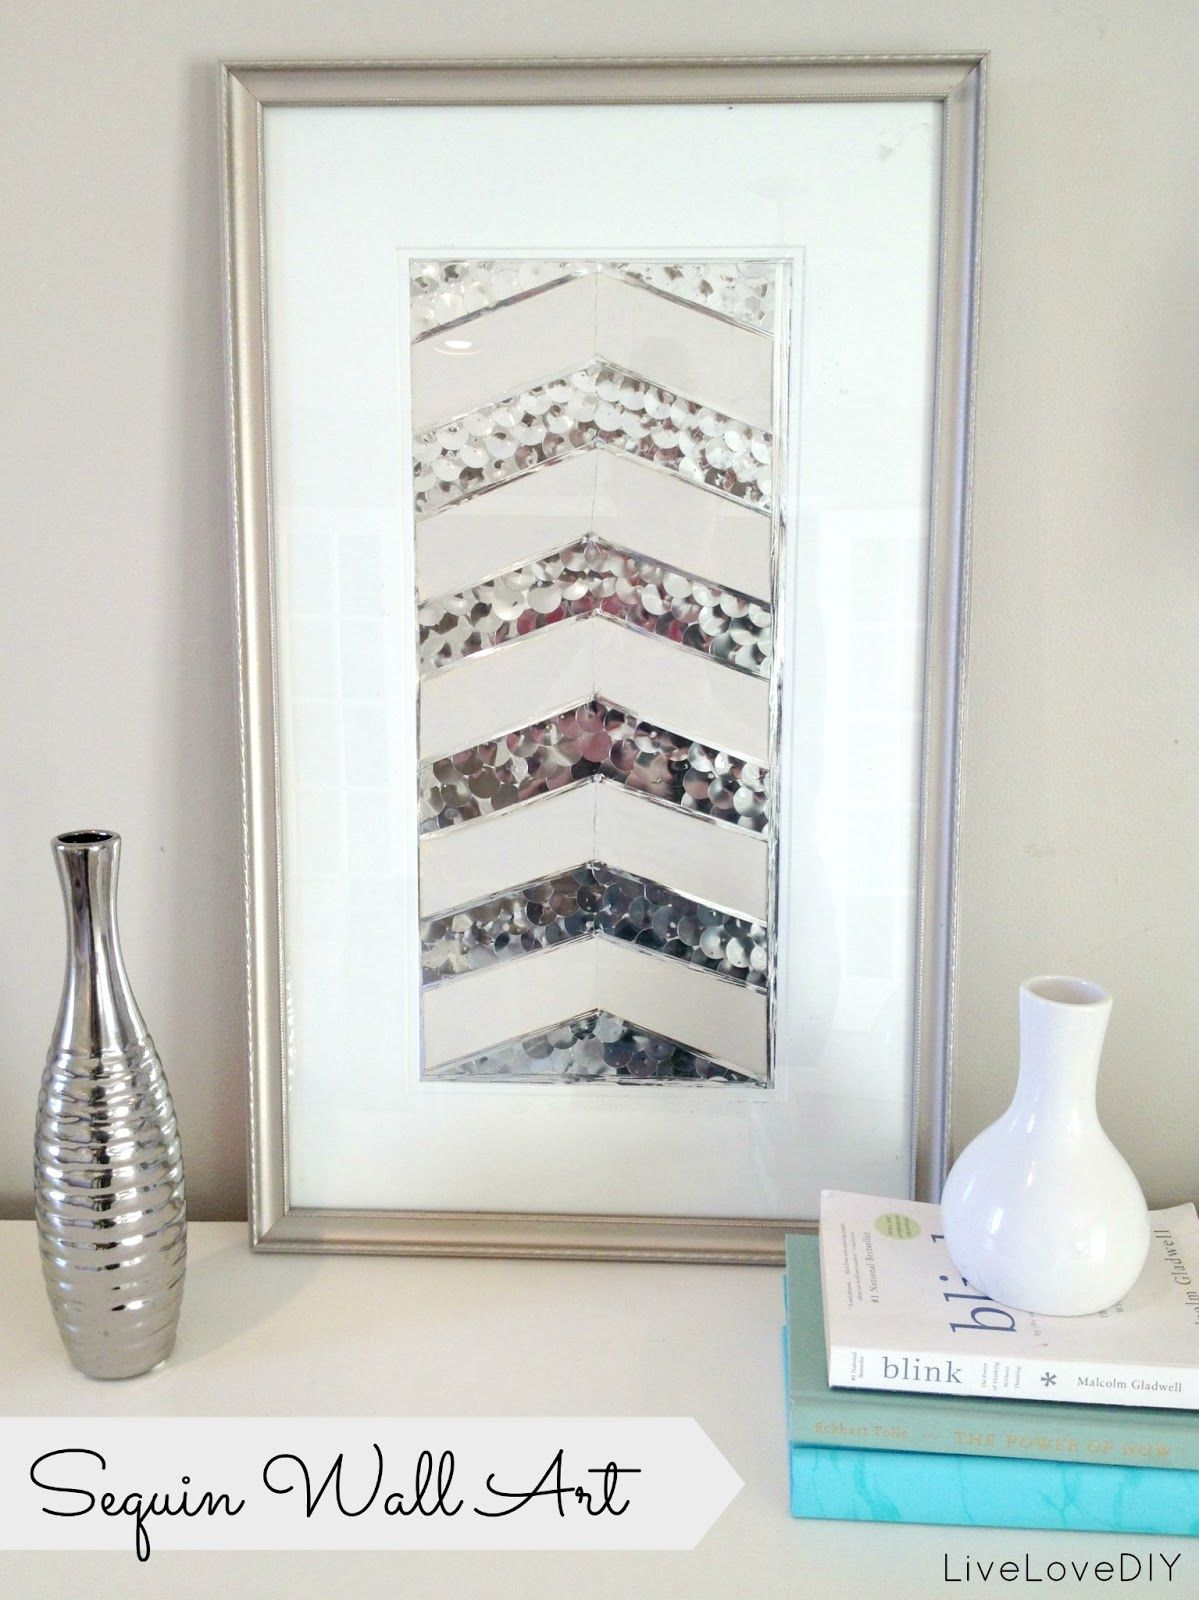 Livelovediy wall art make chic art for cheap inspiration